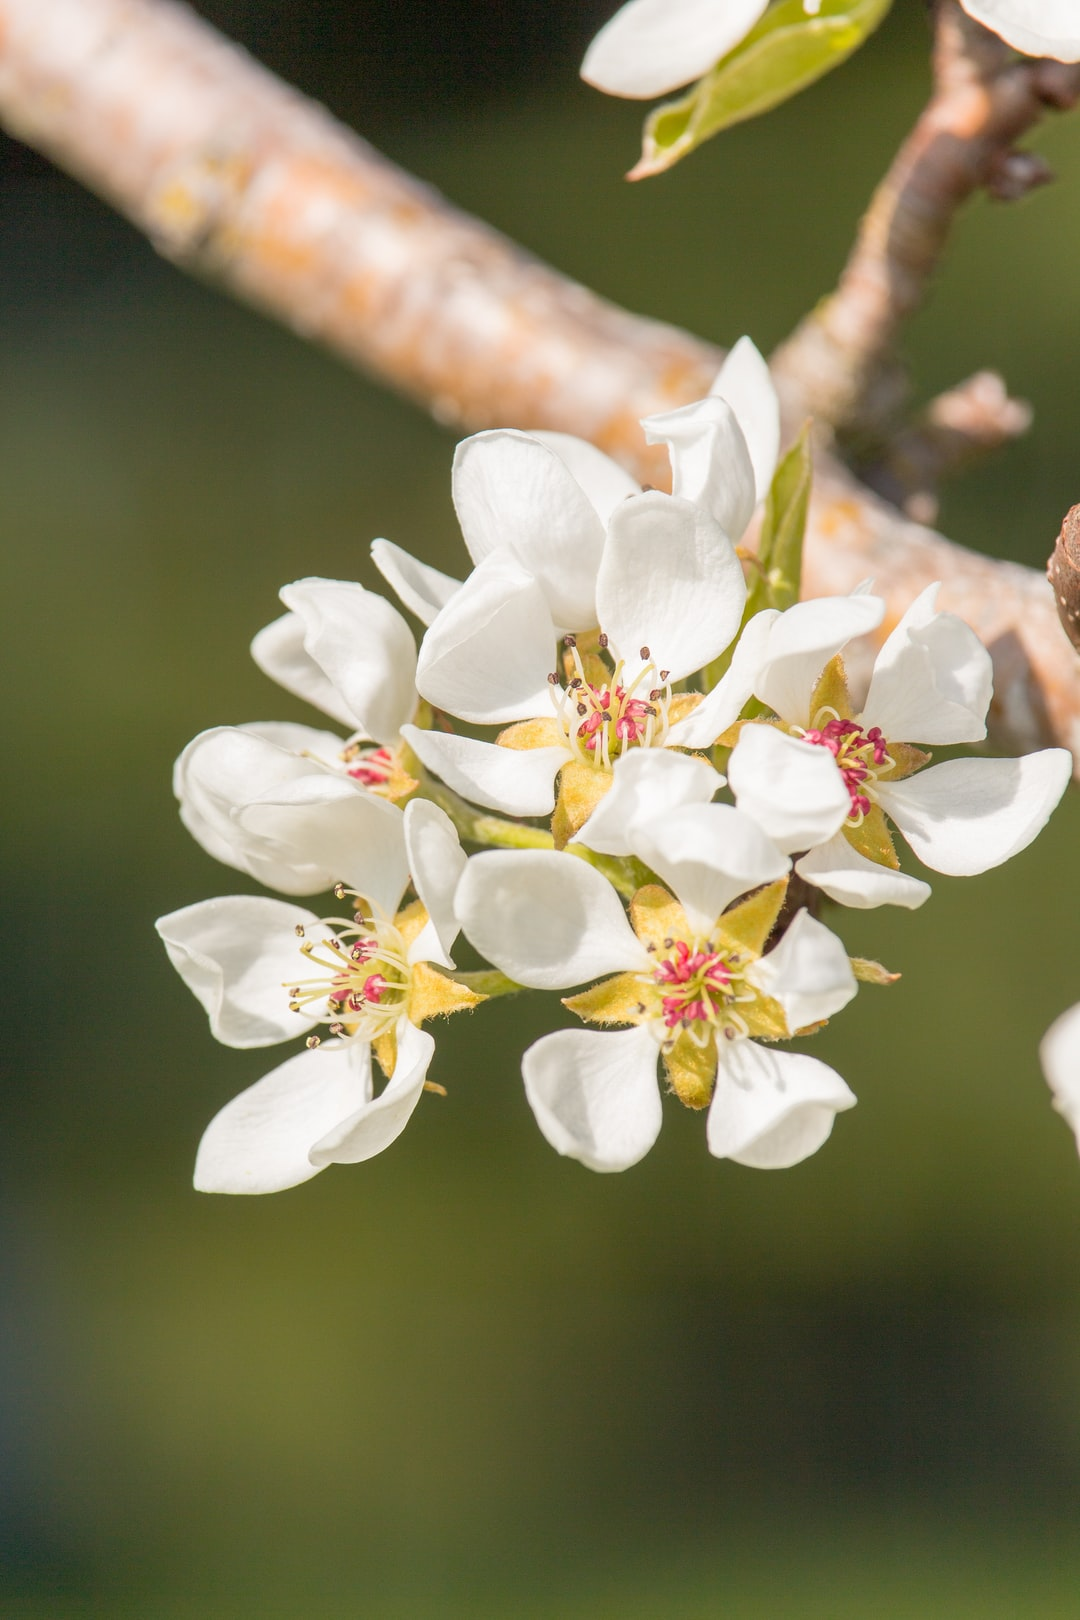 The first blossoms of our pear tree in our garden.